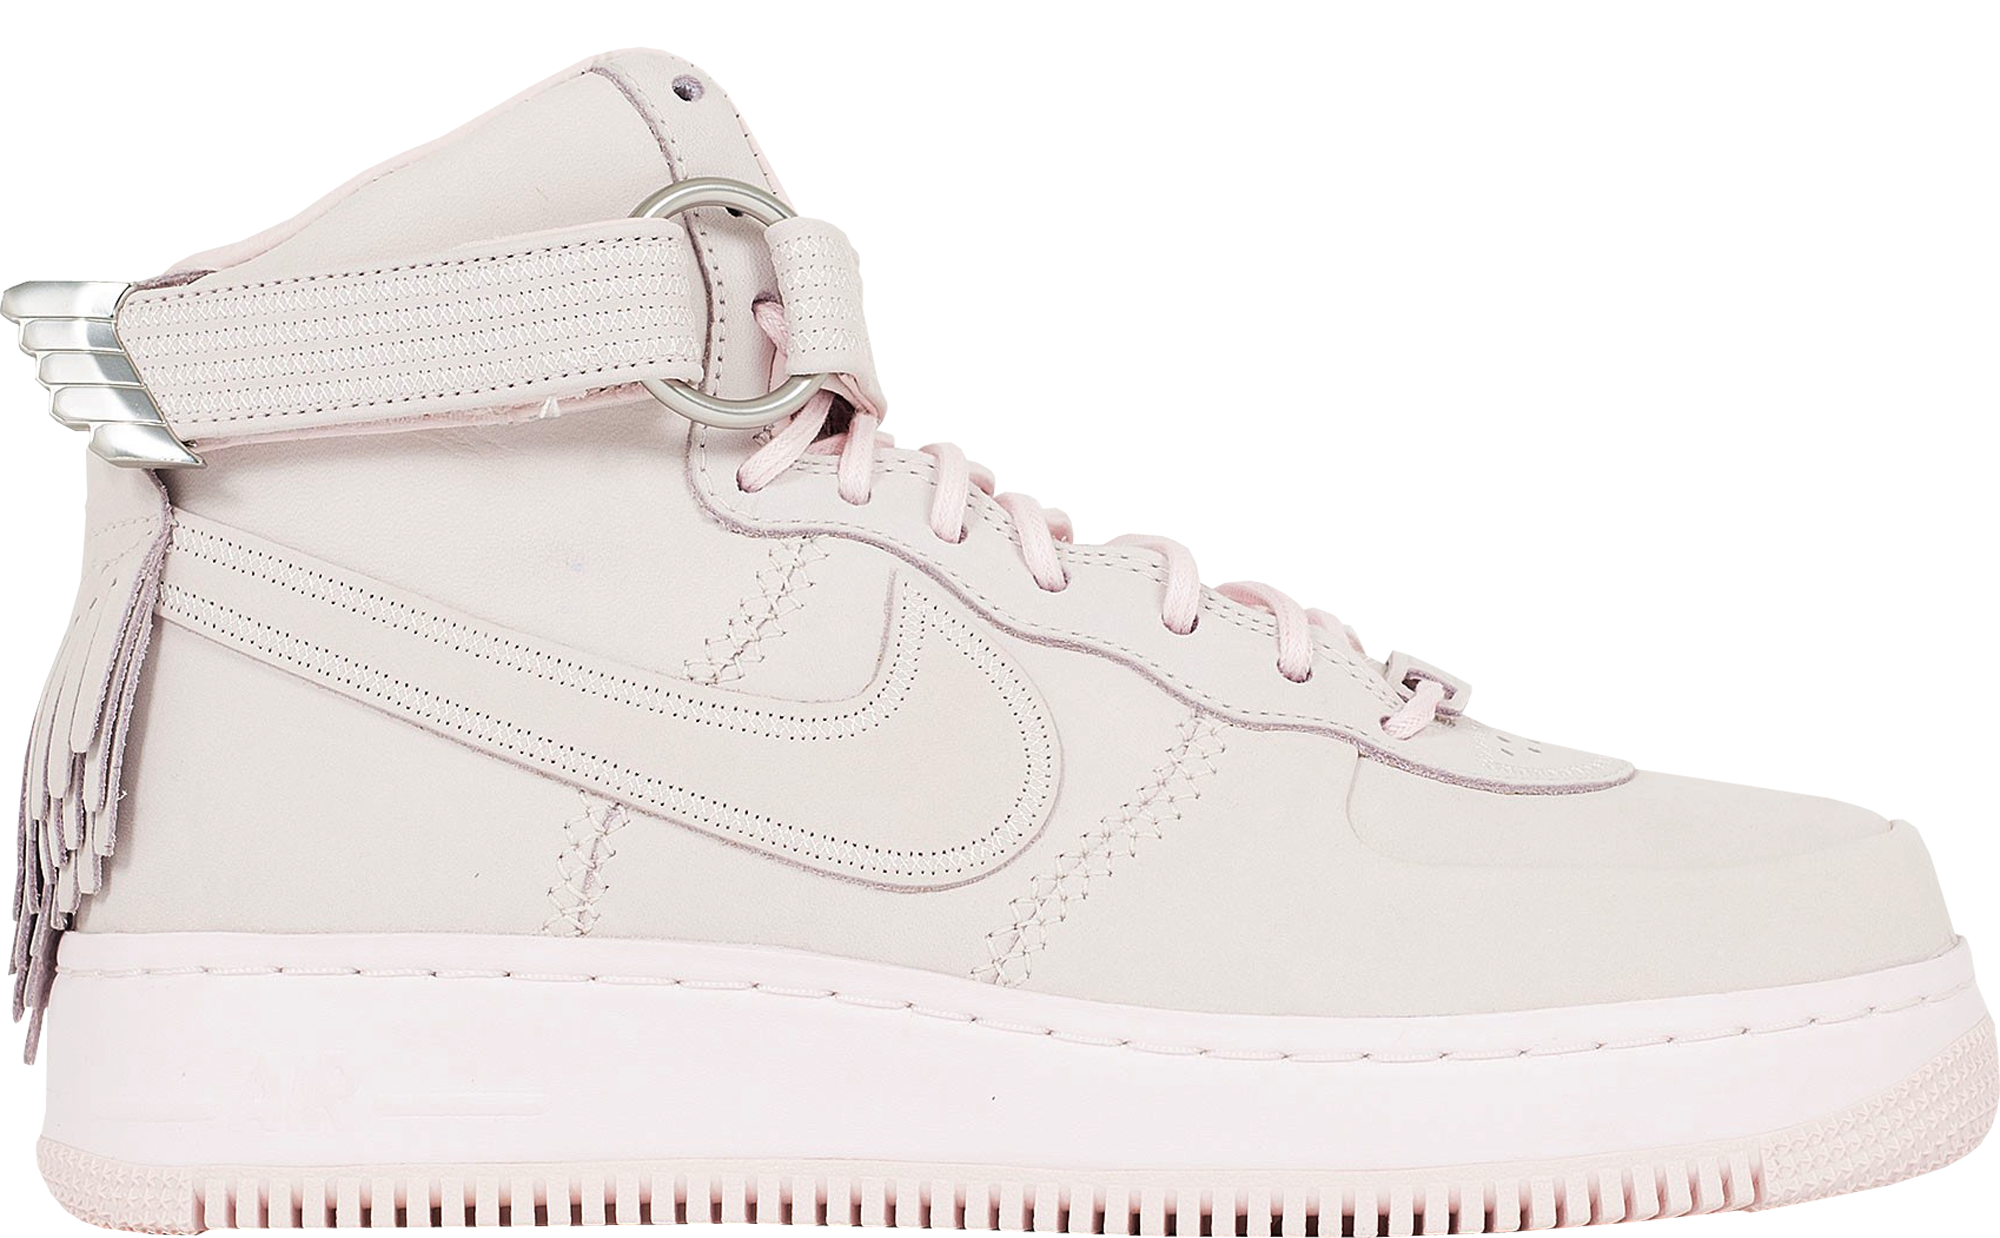 Nike Air Force 1 CMFT Lux High Easter Dress Up